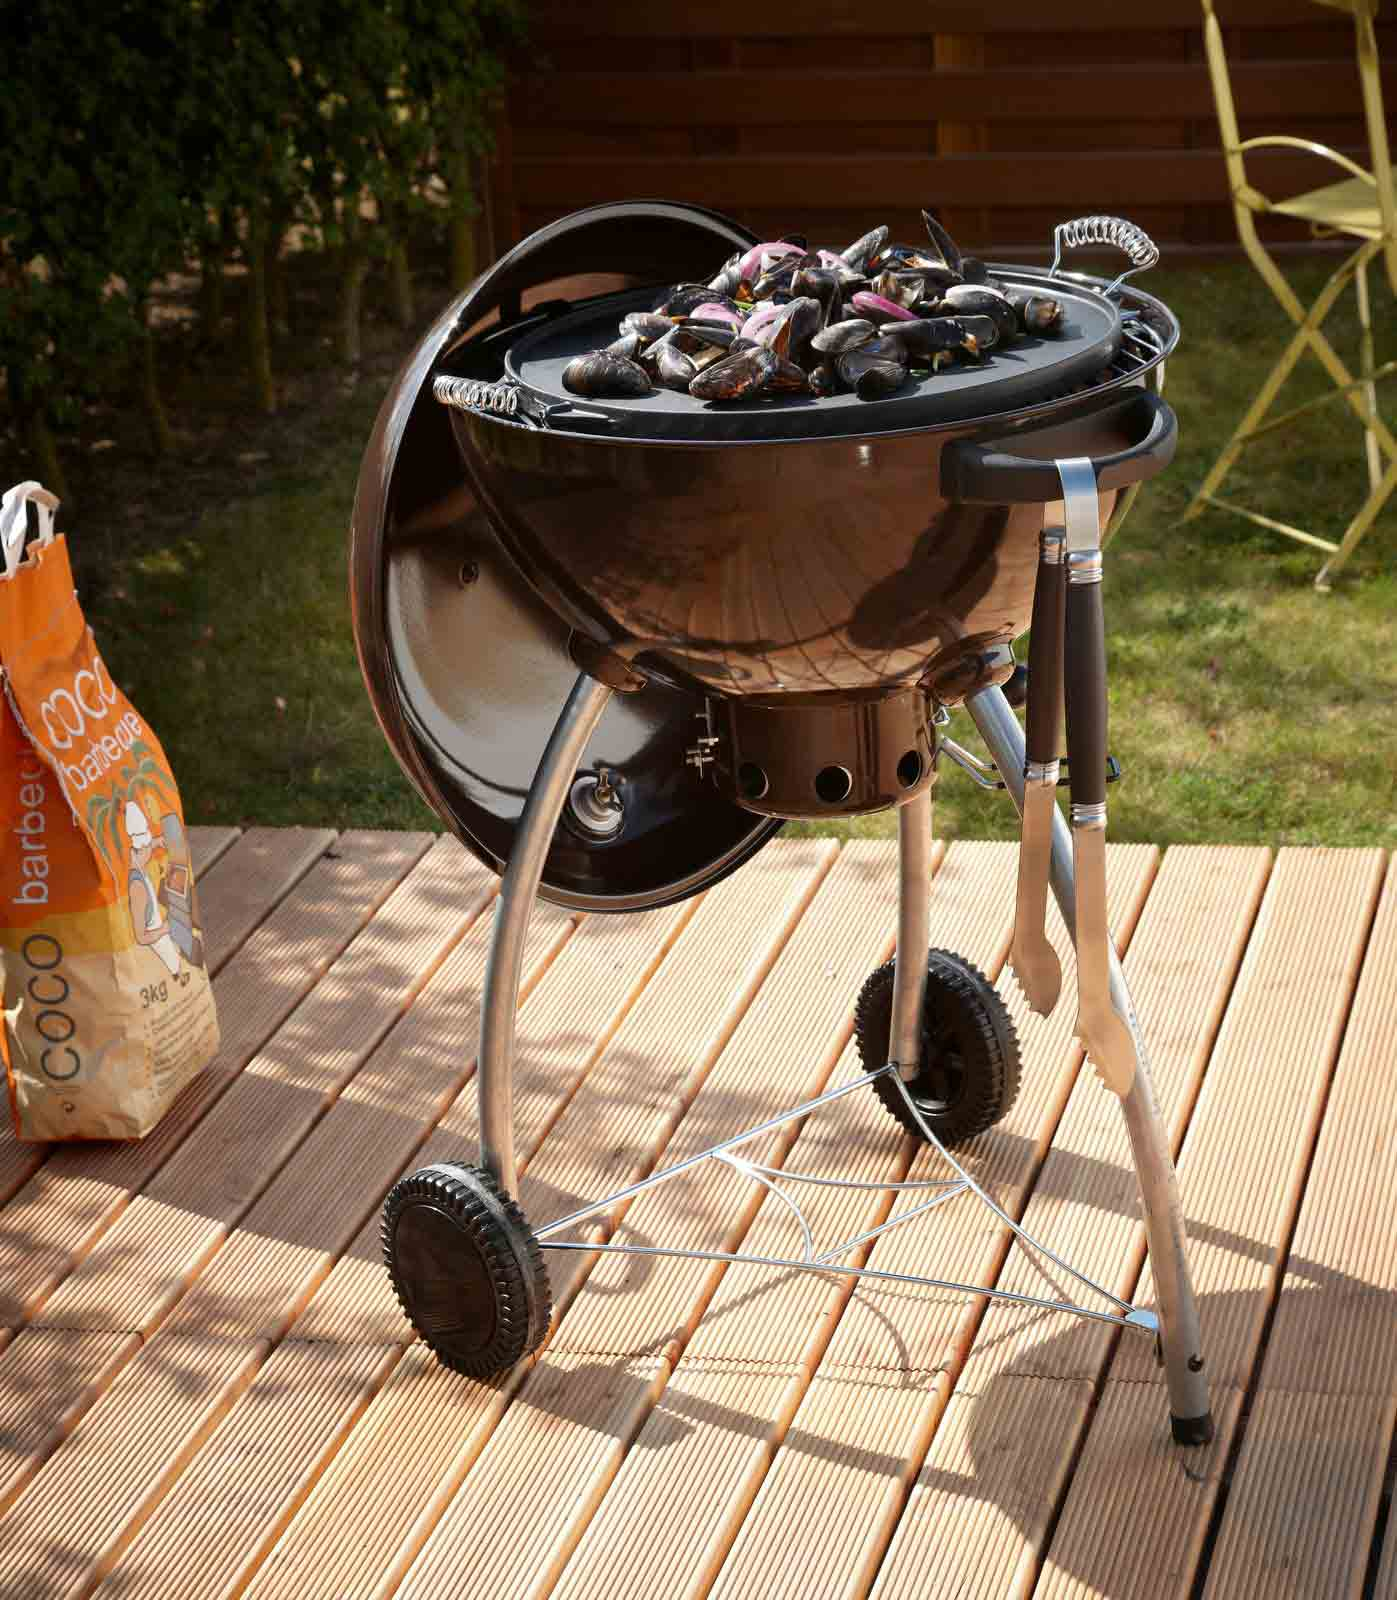 Cook barbecue grill casa grill 1950 watts pour 10 personnes - Barbecue in casa ...